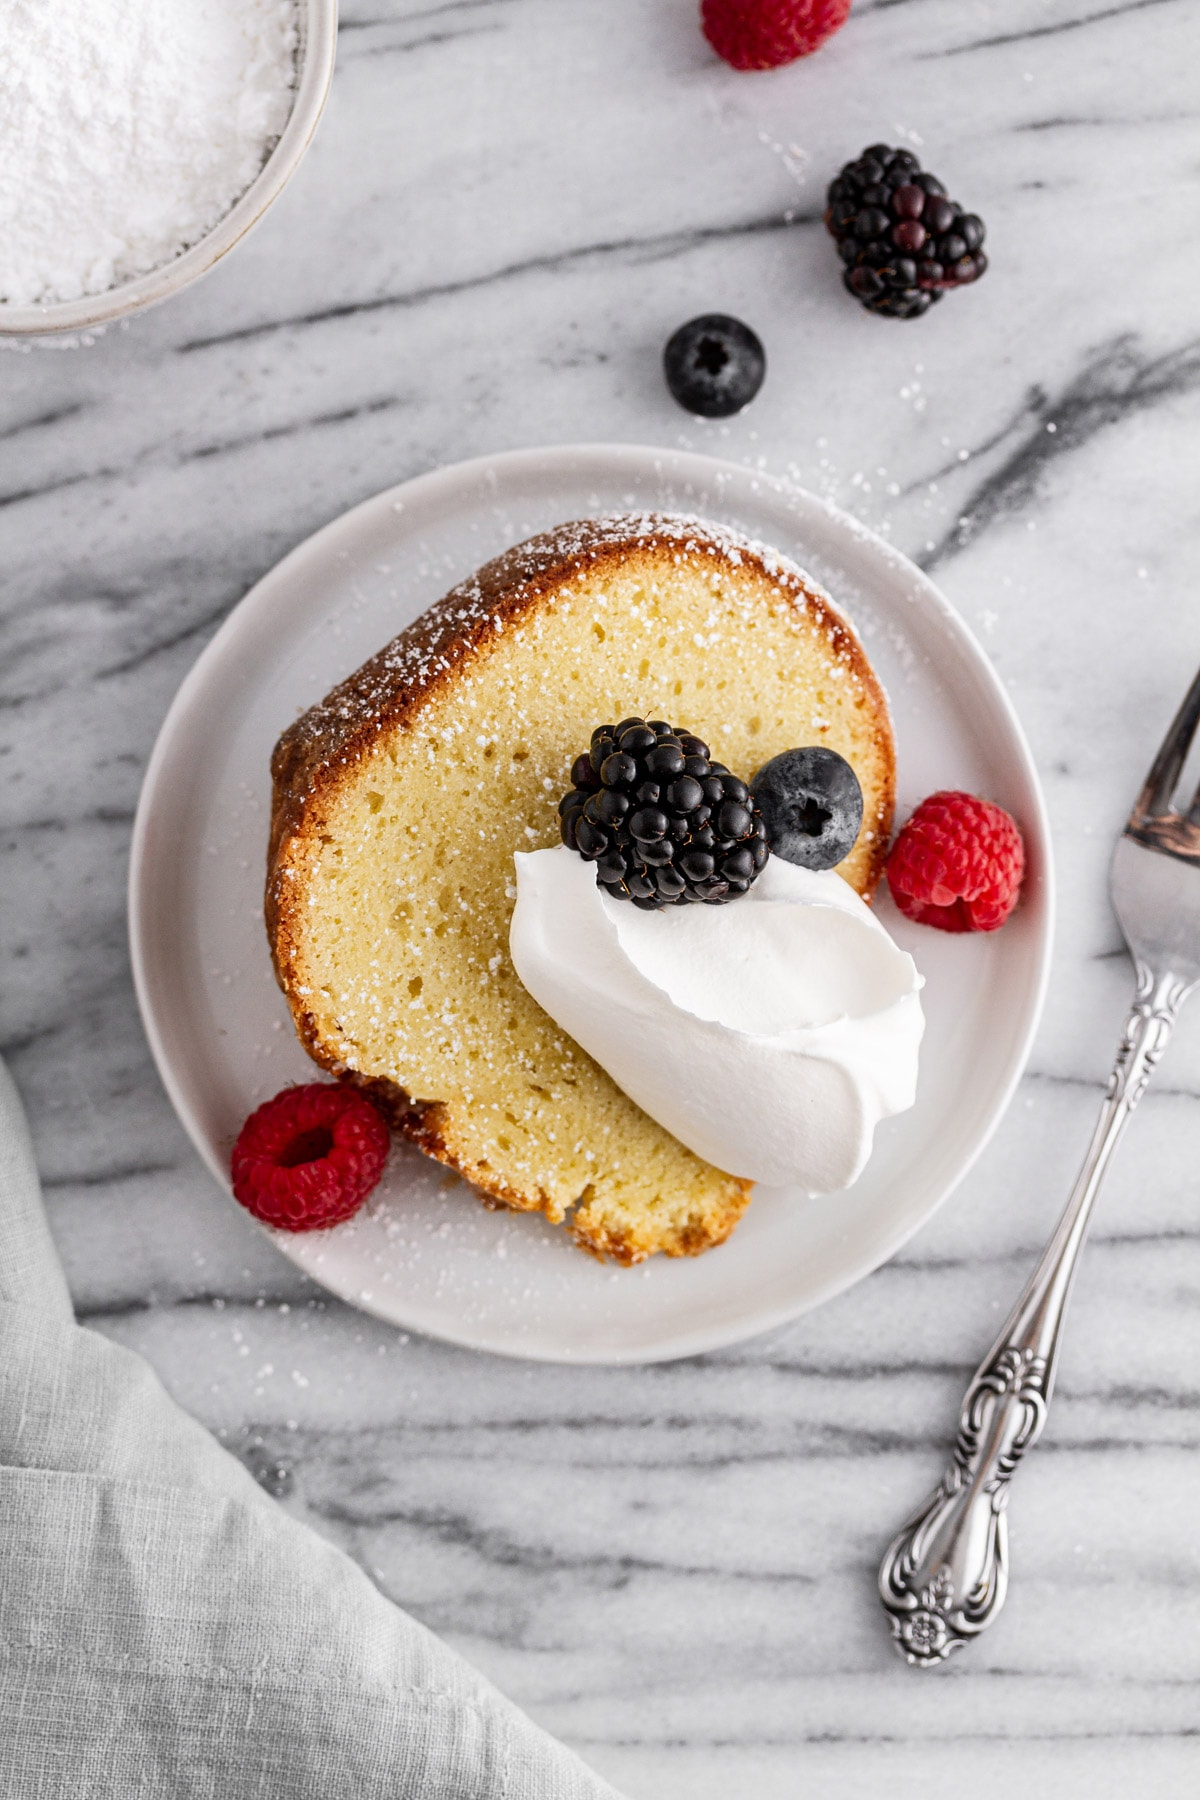 slice of sour cream pound cake on a plate with whipped cream and berries